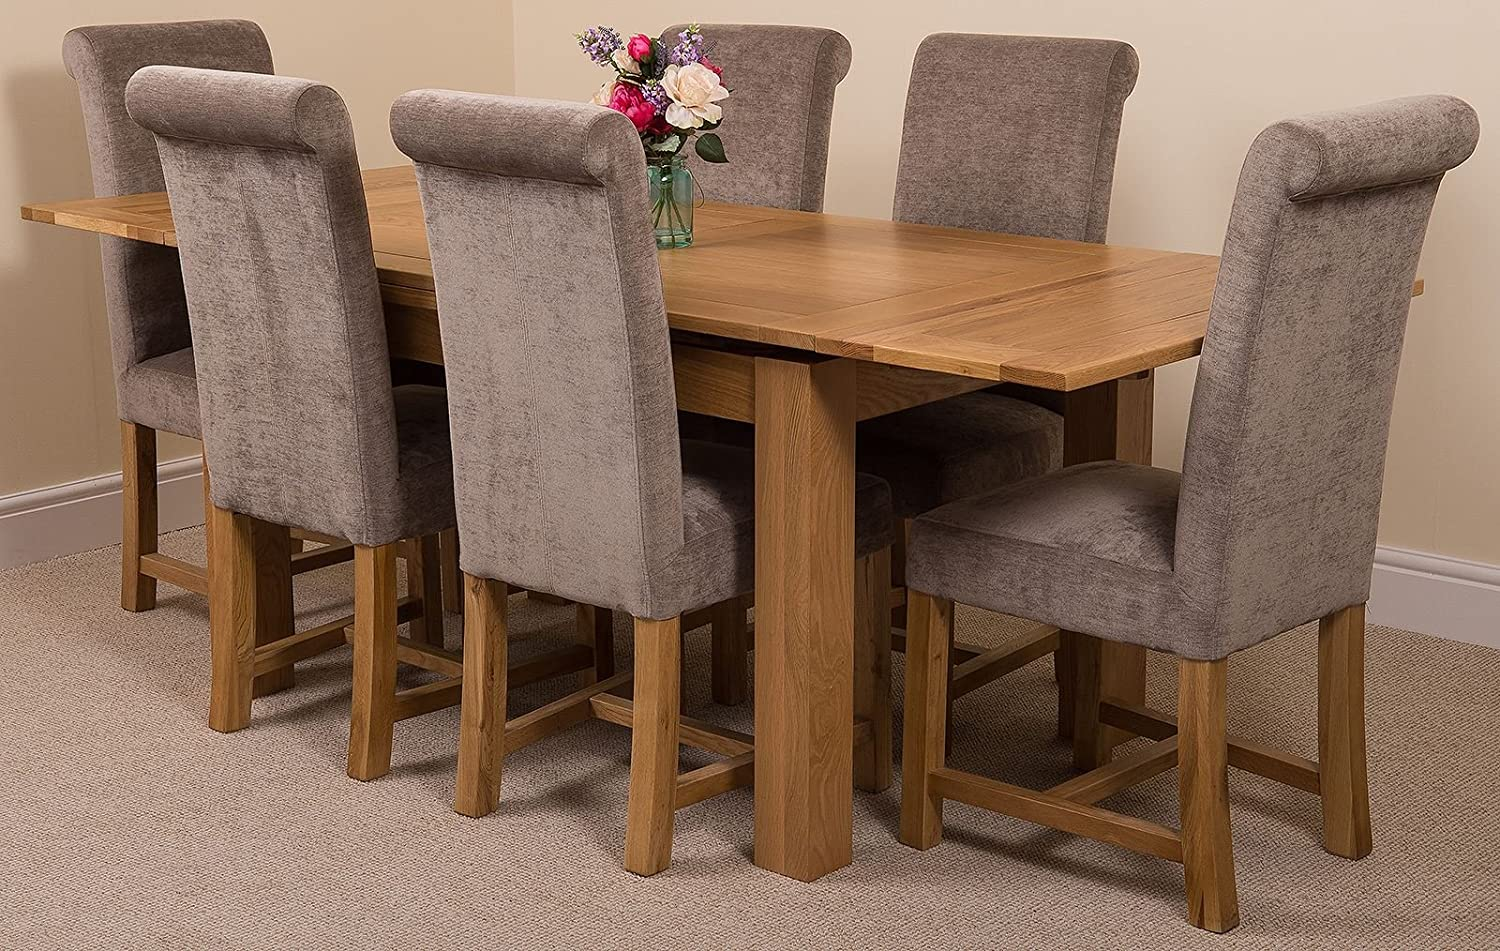 Richmond 140cm 220cm Oak Extending Dining Table And 6 Chairs Dining Set With Washington Grey Fabric Chairs Amazon Co Uk Kitchen Home